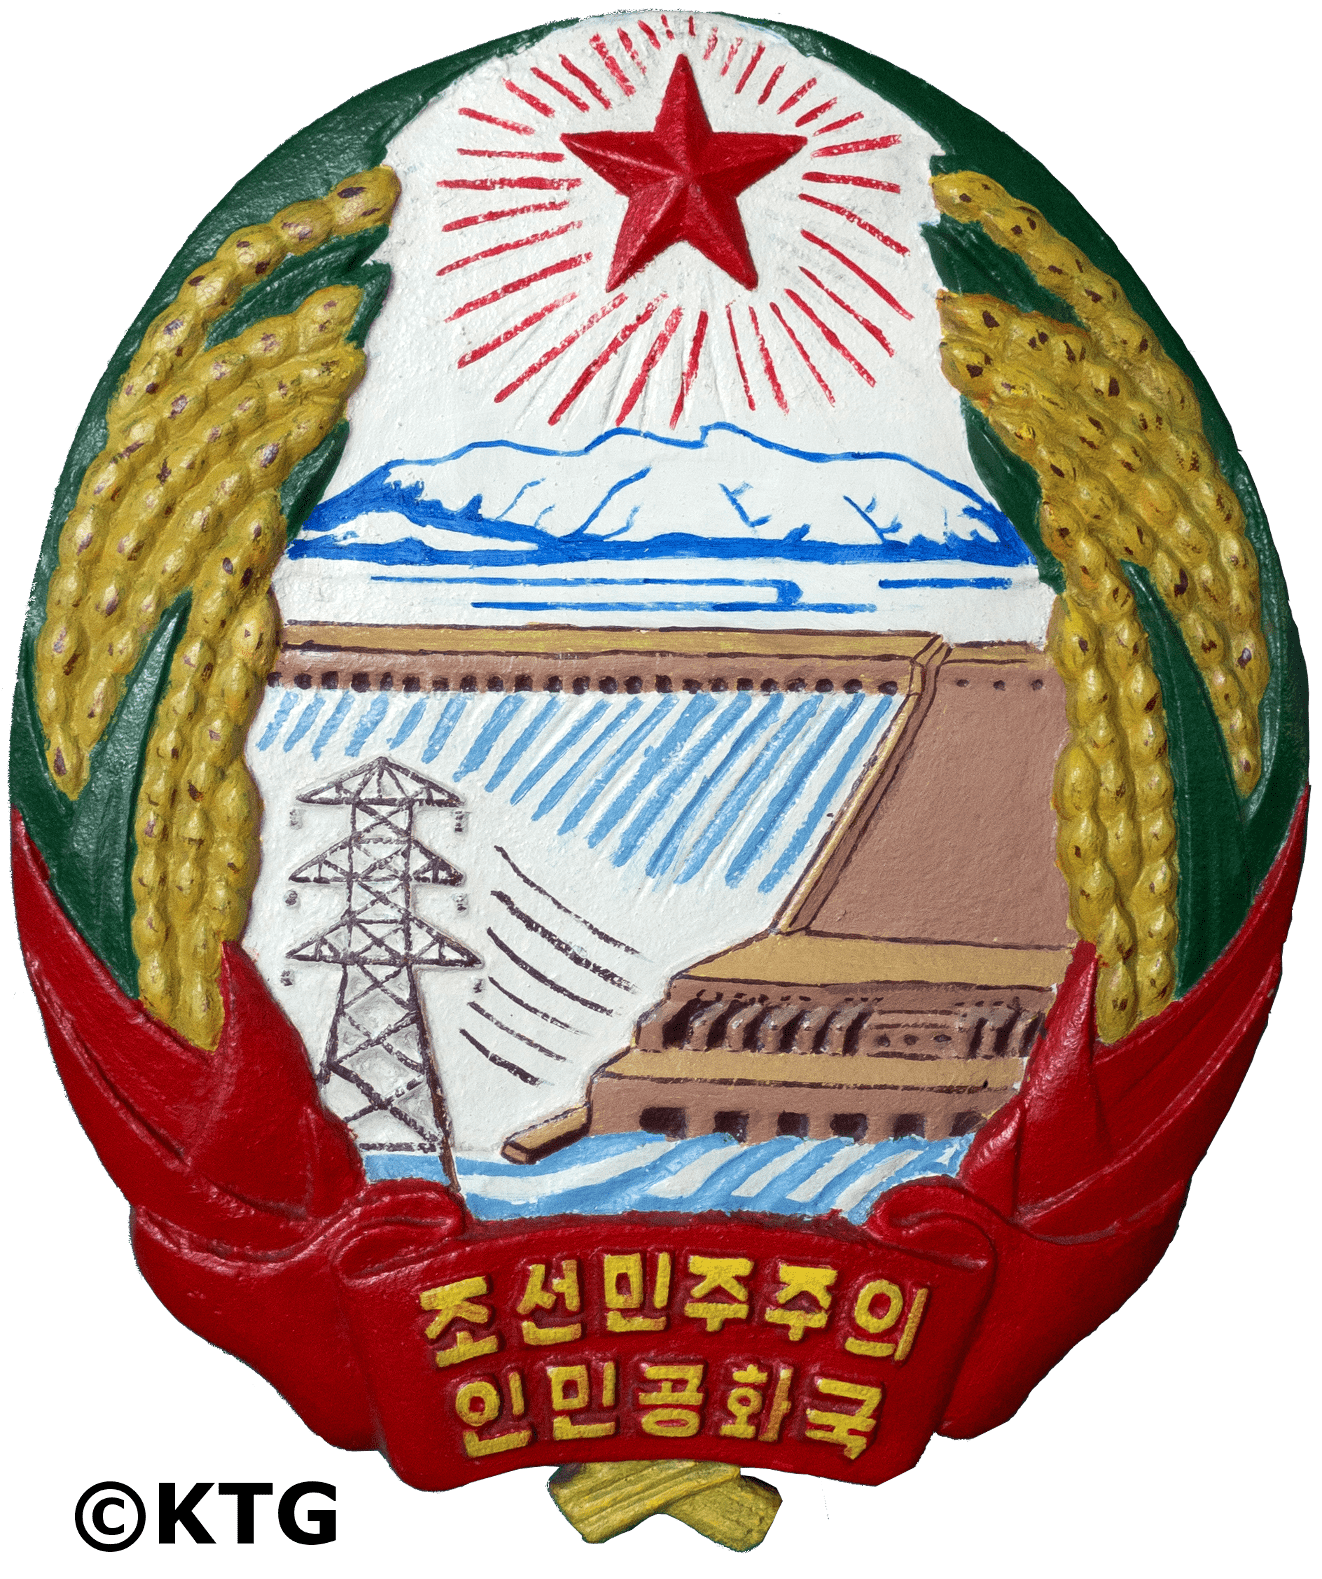 National Emblem of North Korea; the Democratic People's Republic of Korea (DPRK). Picture taken by KTG Tours